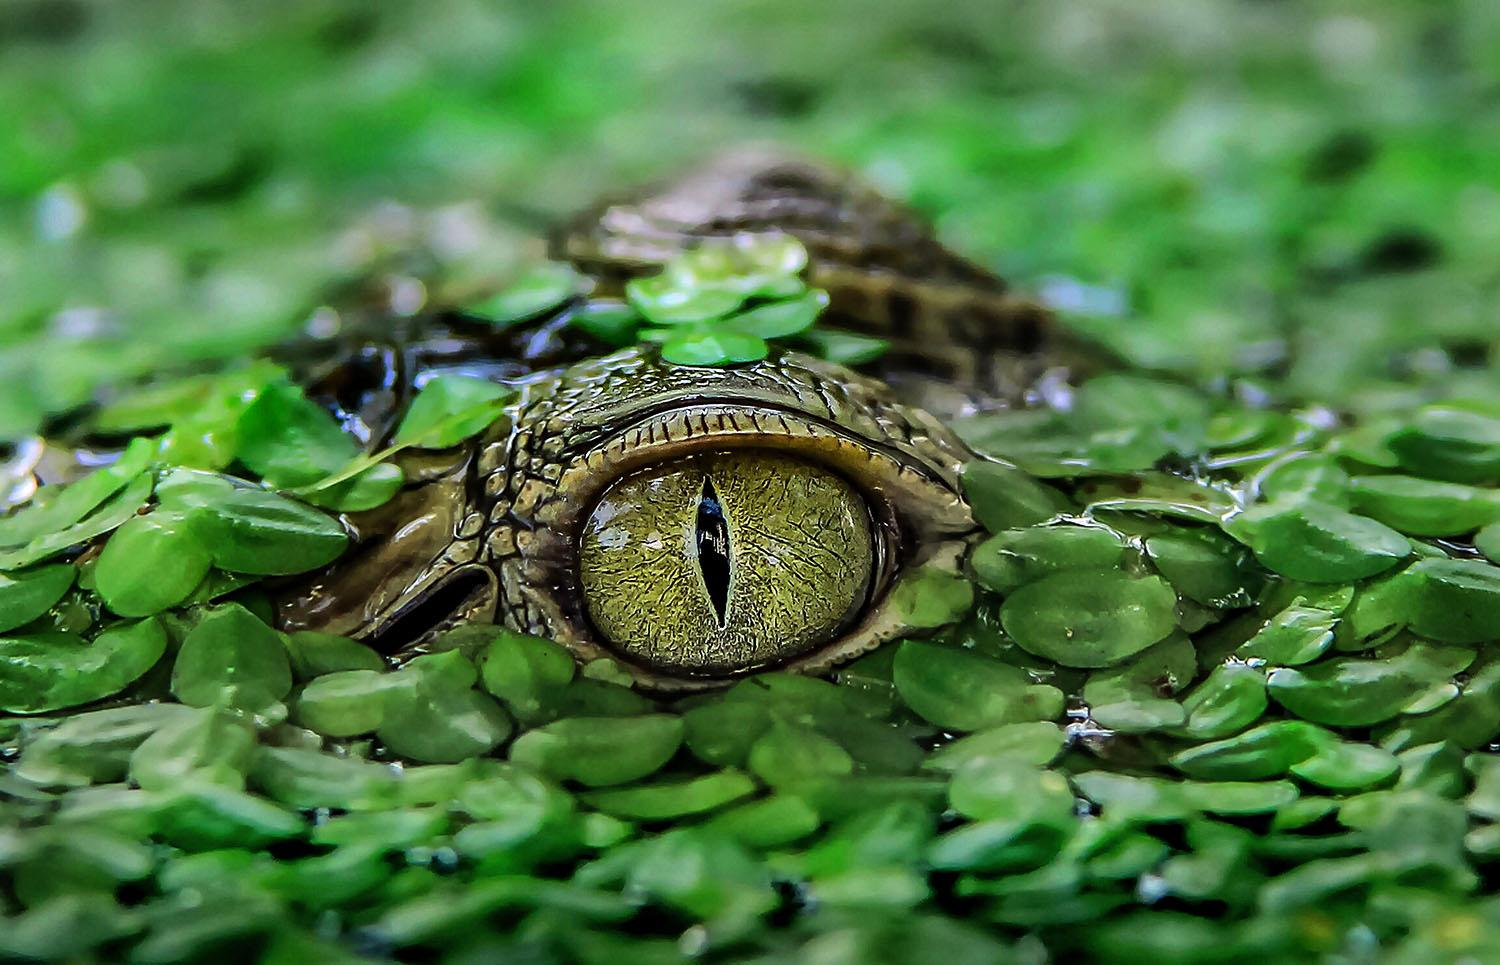 <p>A baby crocodile camouflaging with green leaves in a pond in Tangerang, Indonesia. (Photo:Caters News) </p>